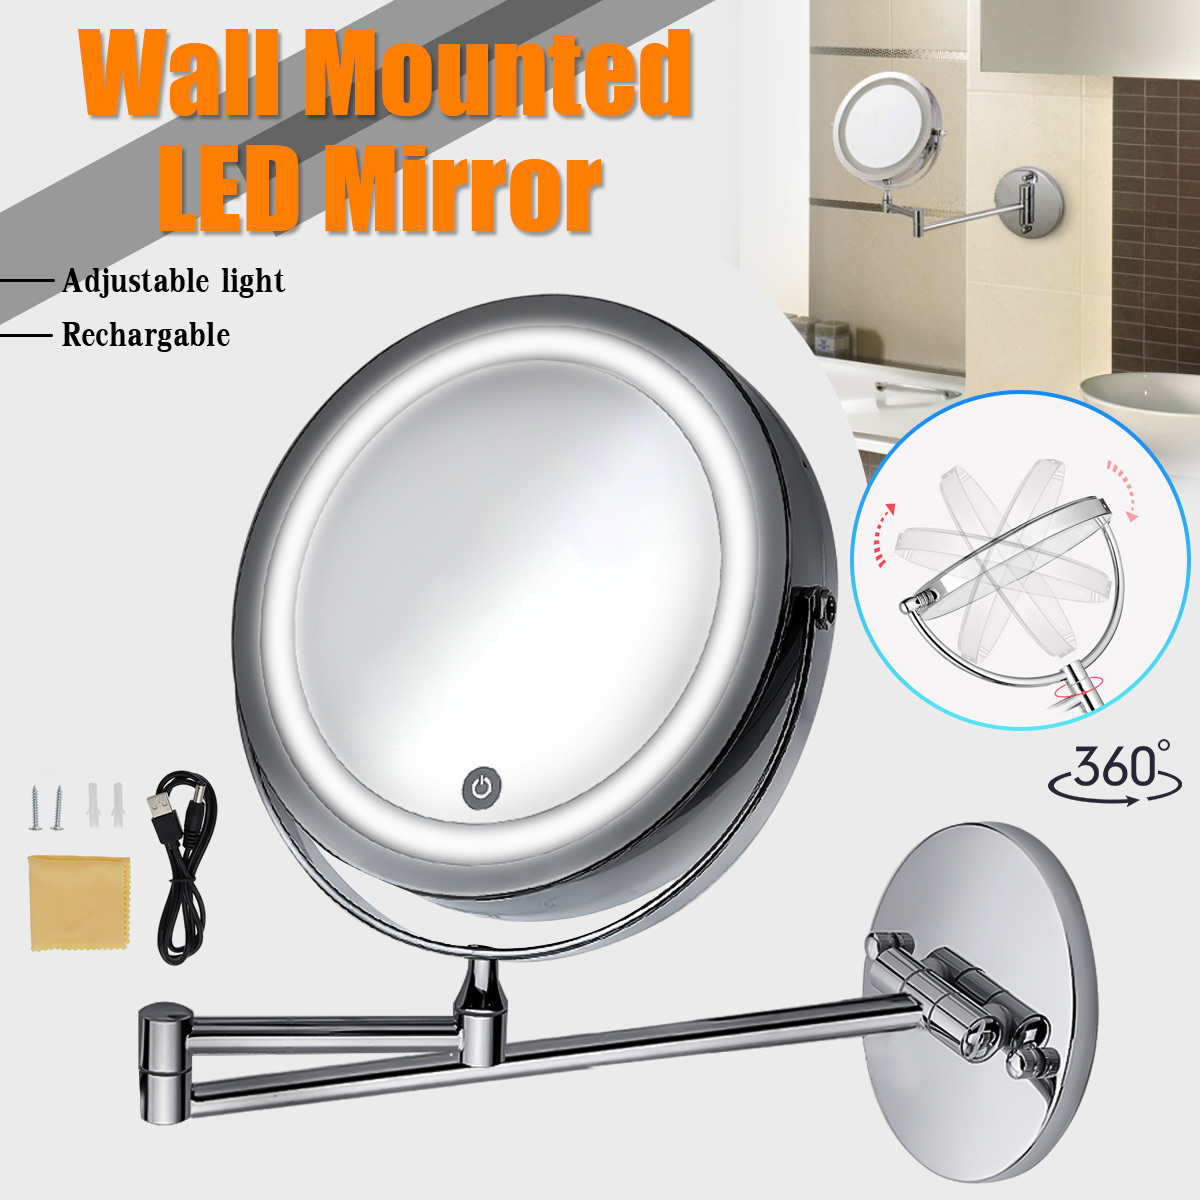 7inch LED Light Wall Mount Extending Folding Double Side Makeup Mirror 10x Magnification Bath Shaving Chrome Bronze Finish7inch LED Light Wall Mount Extending Folding Double Side Makeup Mirror 10x Magnification Bath Shaving Chrome Bronze Finish